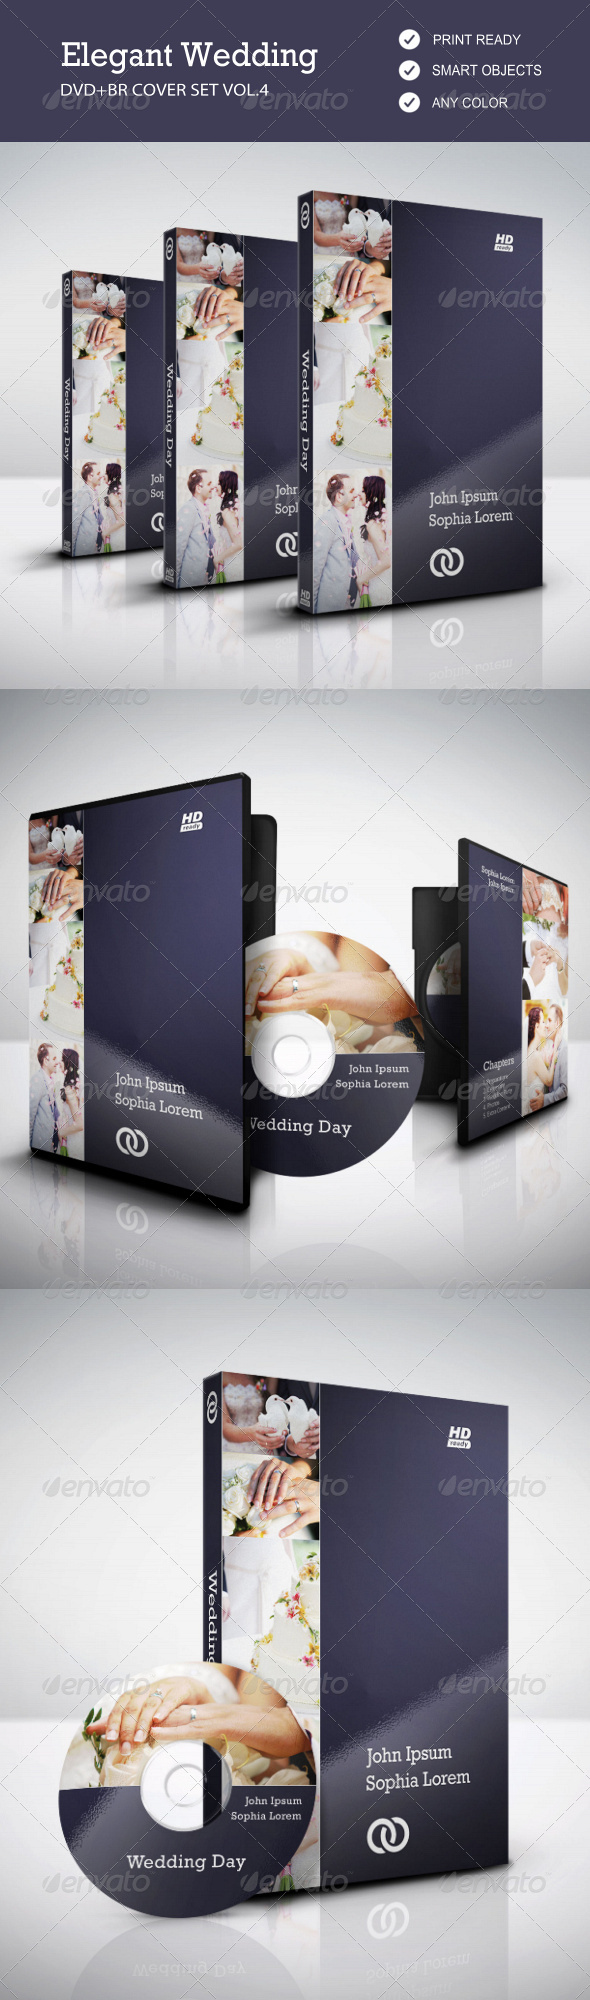 GraphicRiver Elegant Wedding DVD & BR Cover Set vol.4 7902068